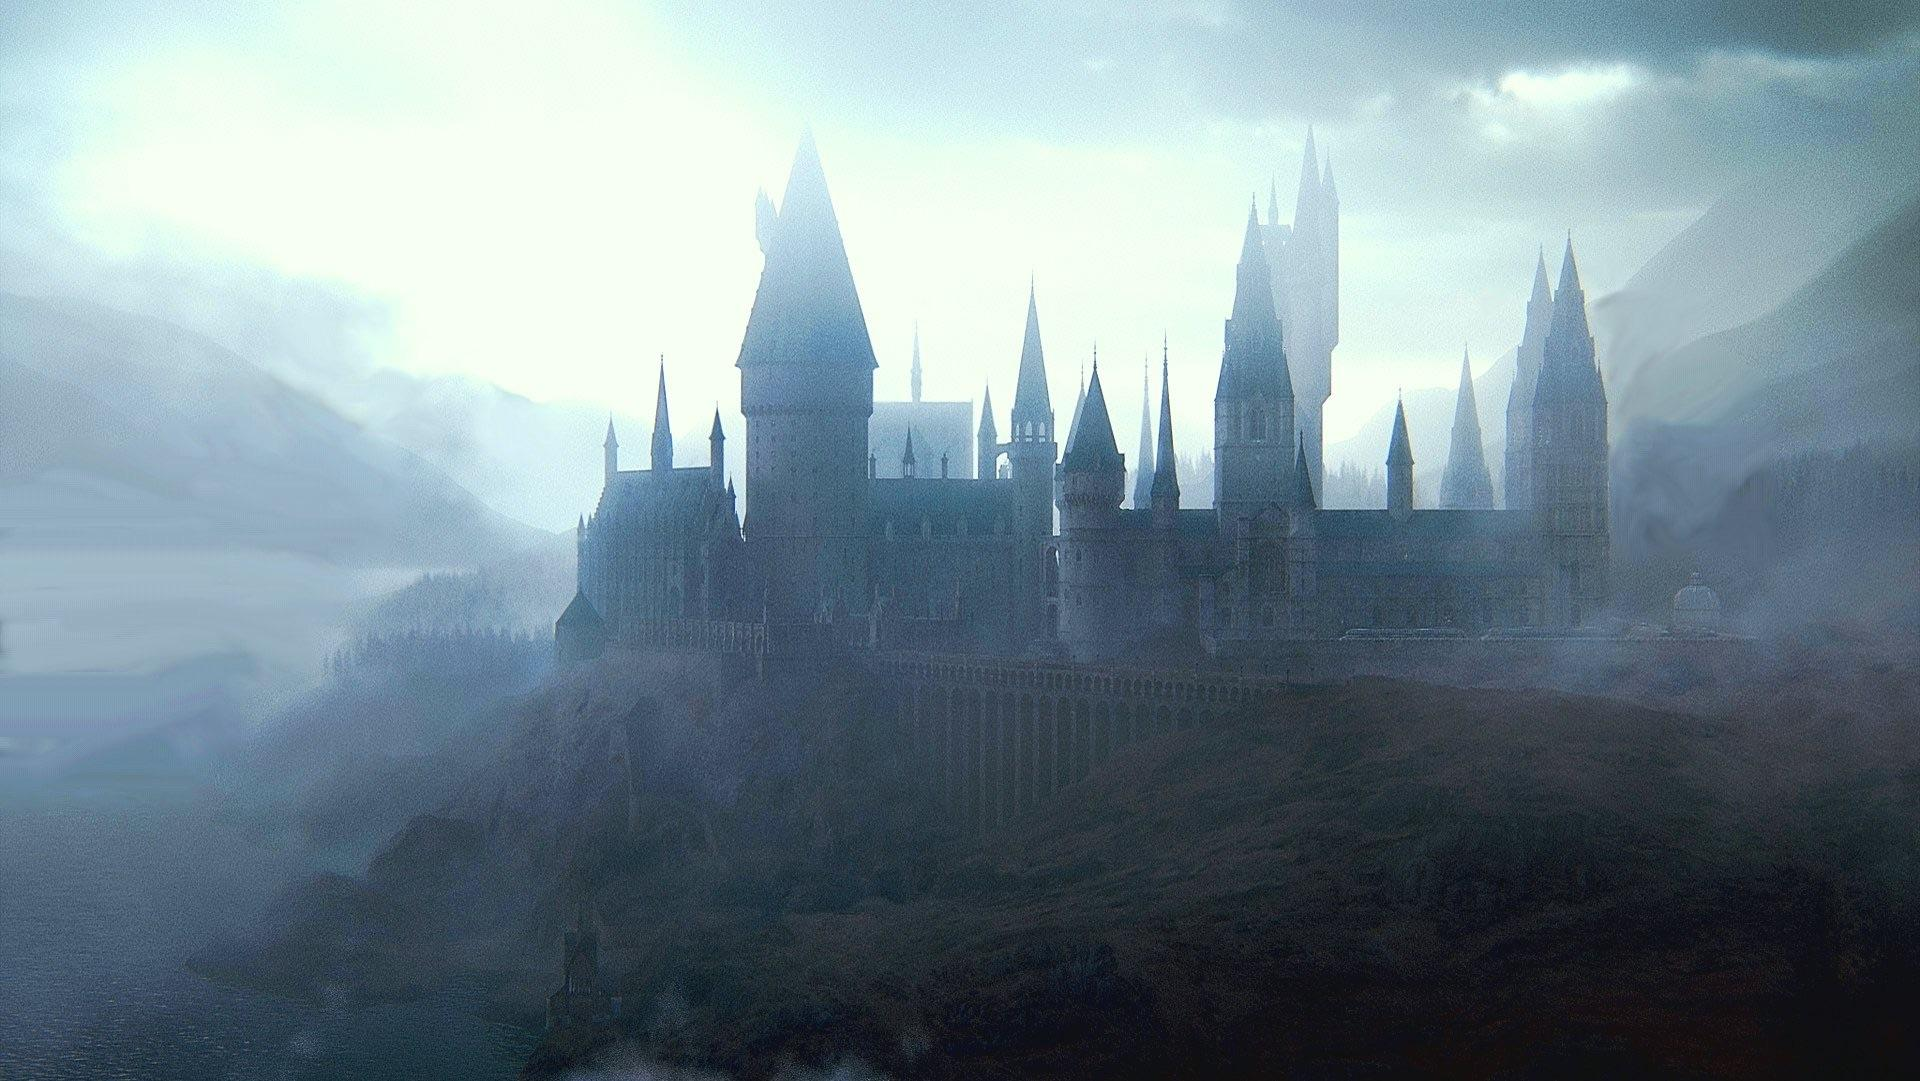 1920x1080-Hogwarts-Need-iPhone-S-Plus-Background-for-IPhoneSPlus-Follow-iPhone-wallpaper-wp3401650